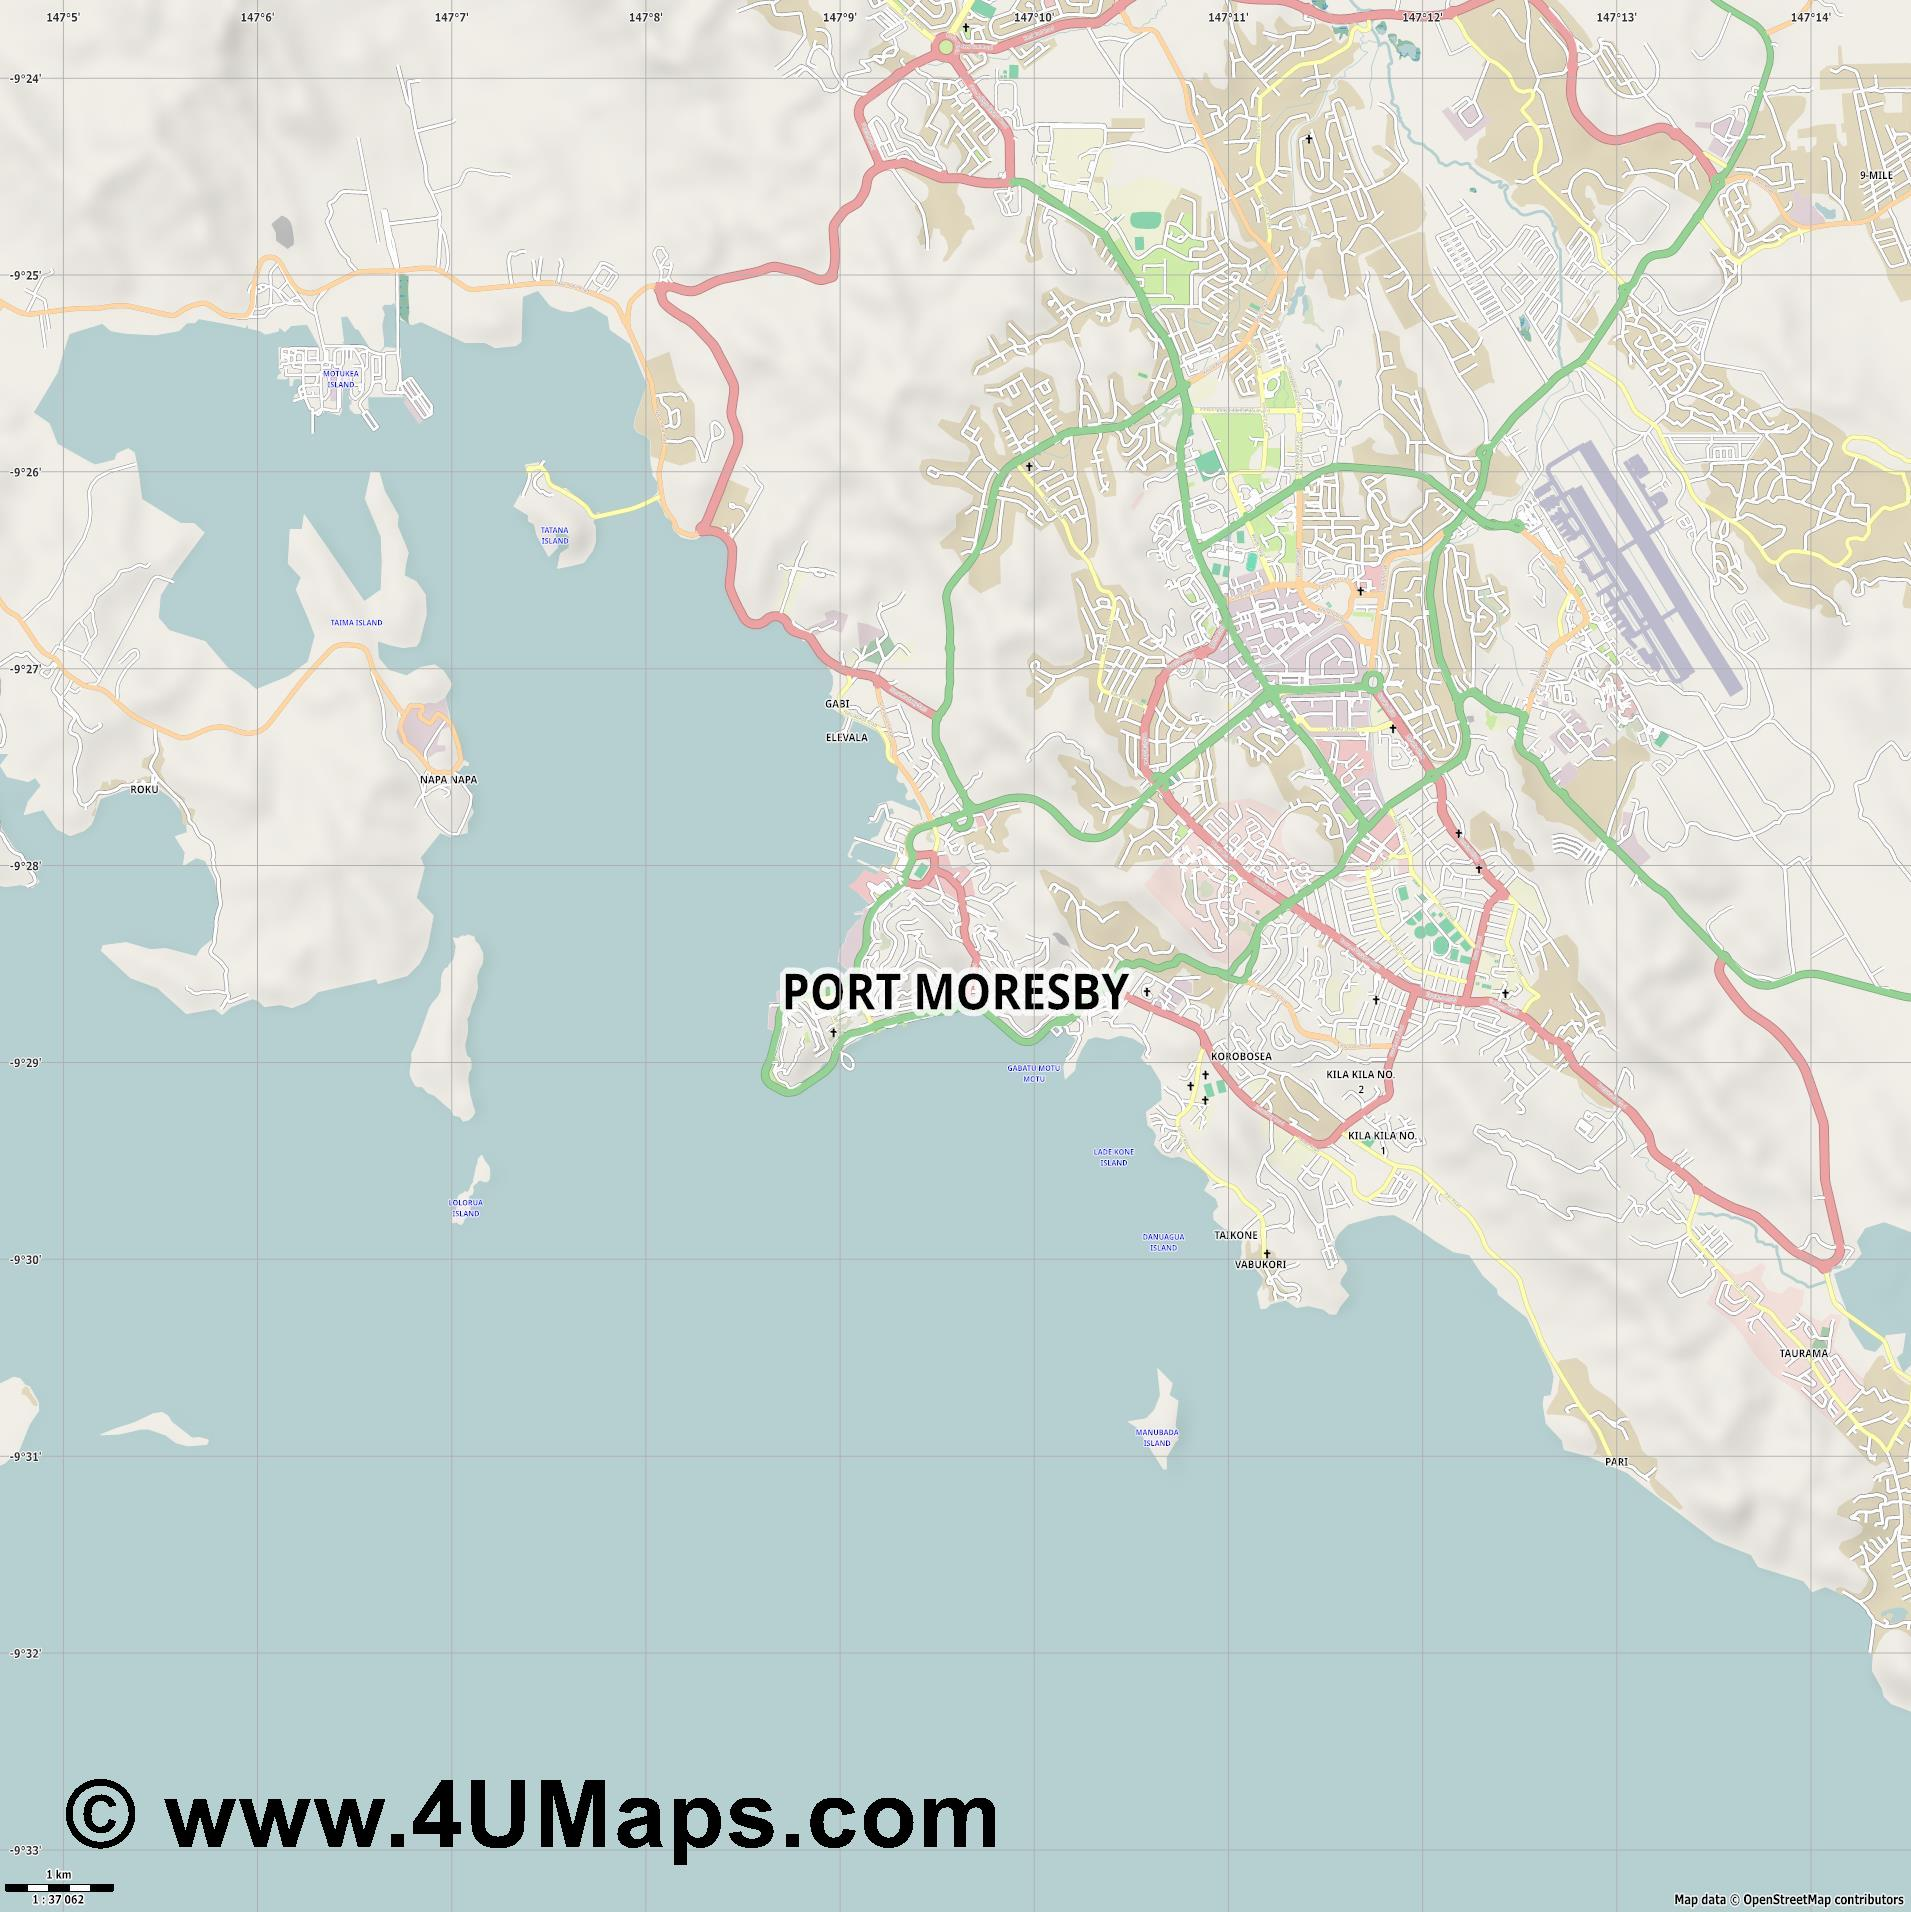 Port Moresby Puerto Moresby  jpg high detail, large area preview vector city map